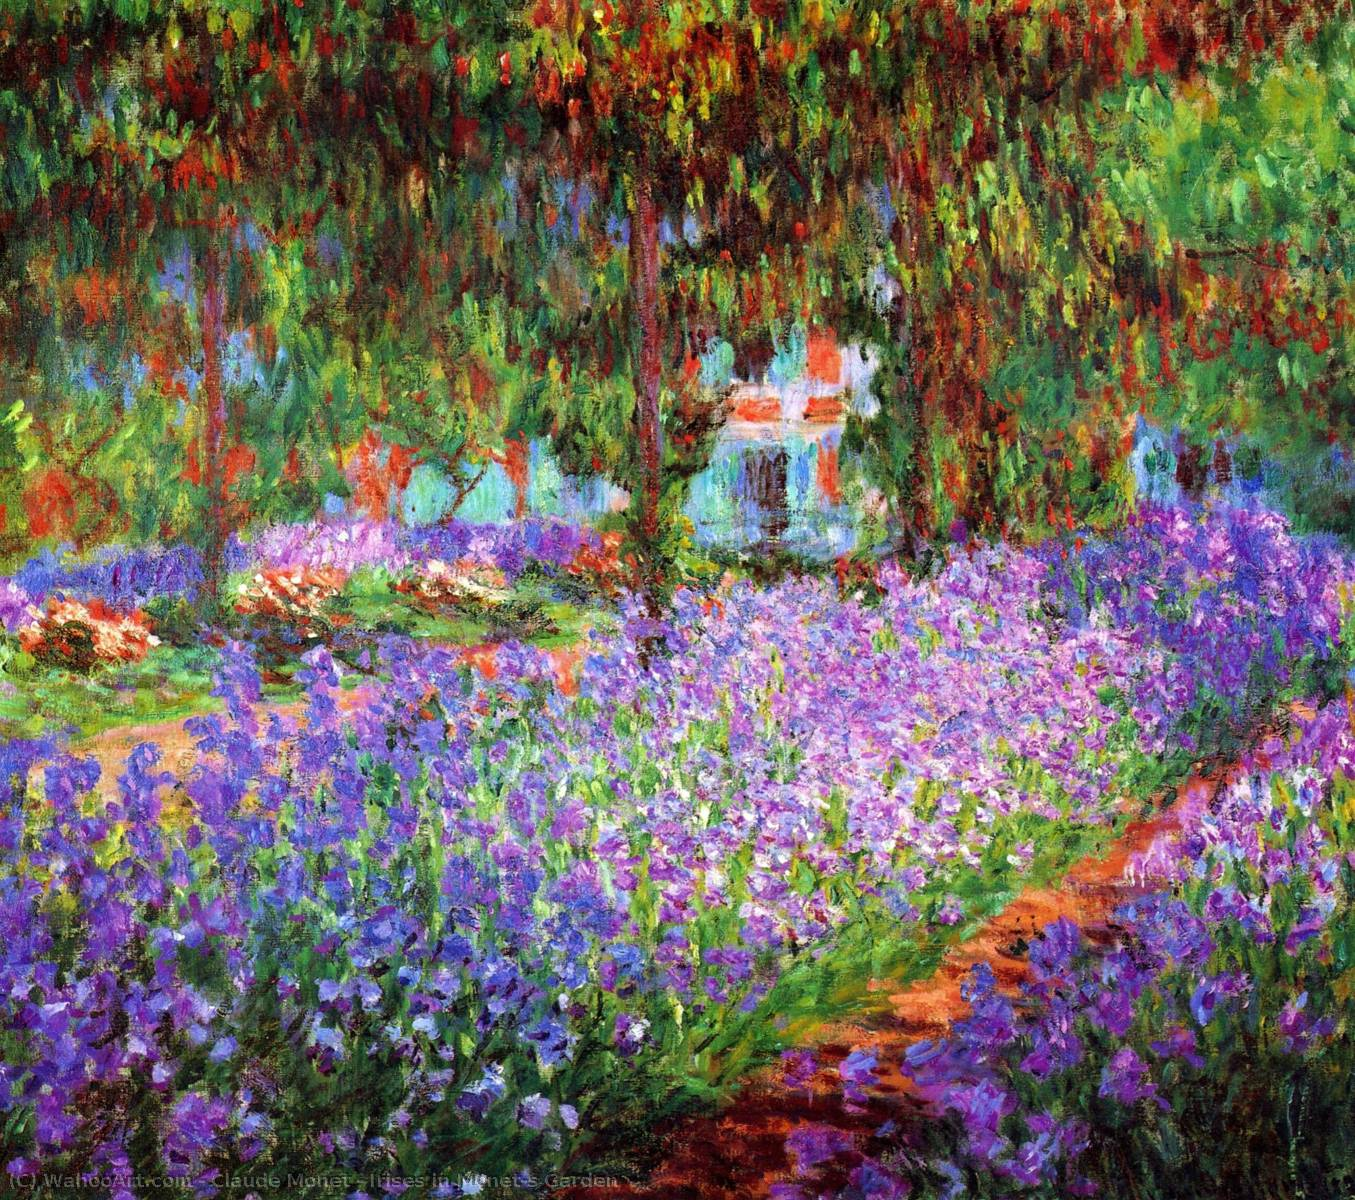 iris dans monet jardin, 1900 de Claude Monet (1840-1926, France)